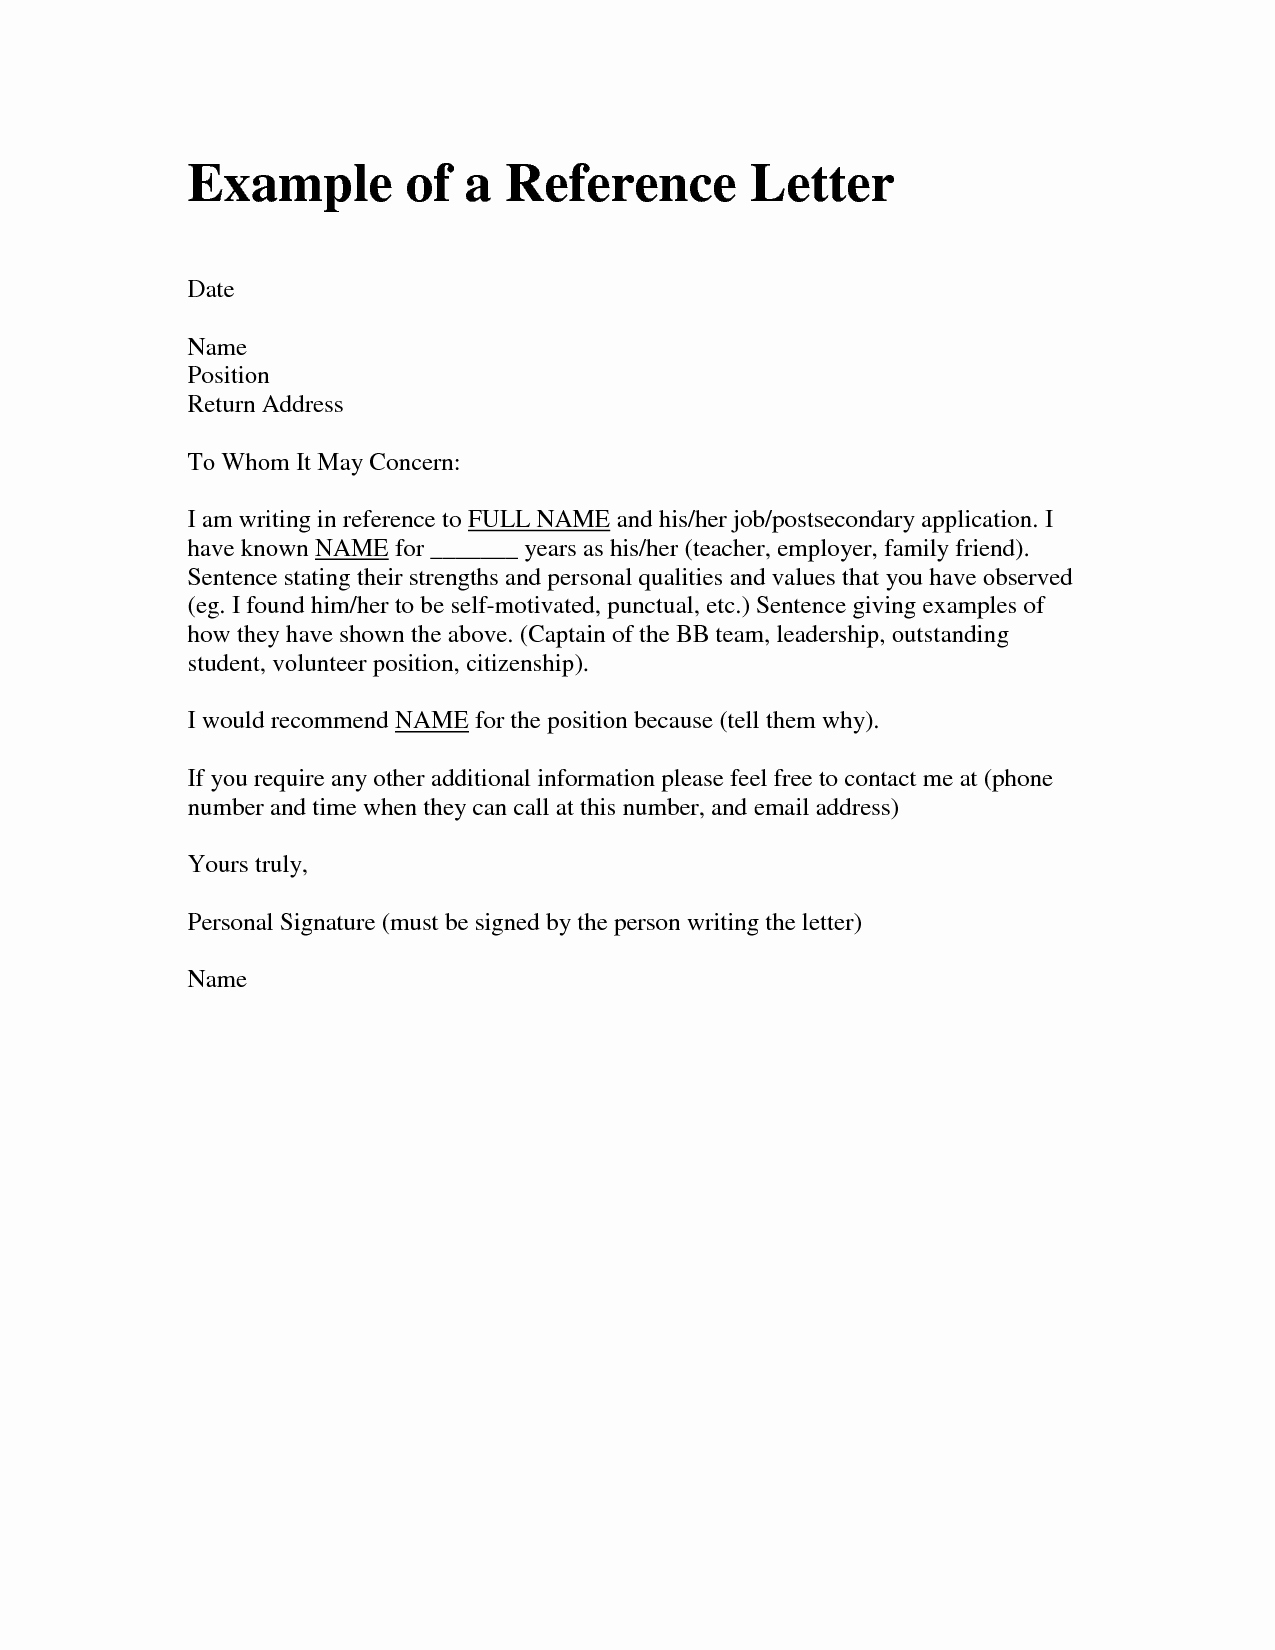 Letter Of Recomendation Templates Beautiful Letter Re Mendation Template for Friend Letter Art